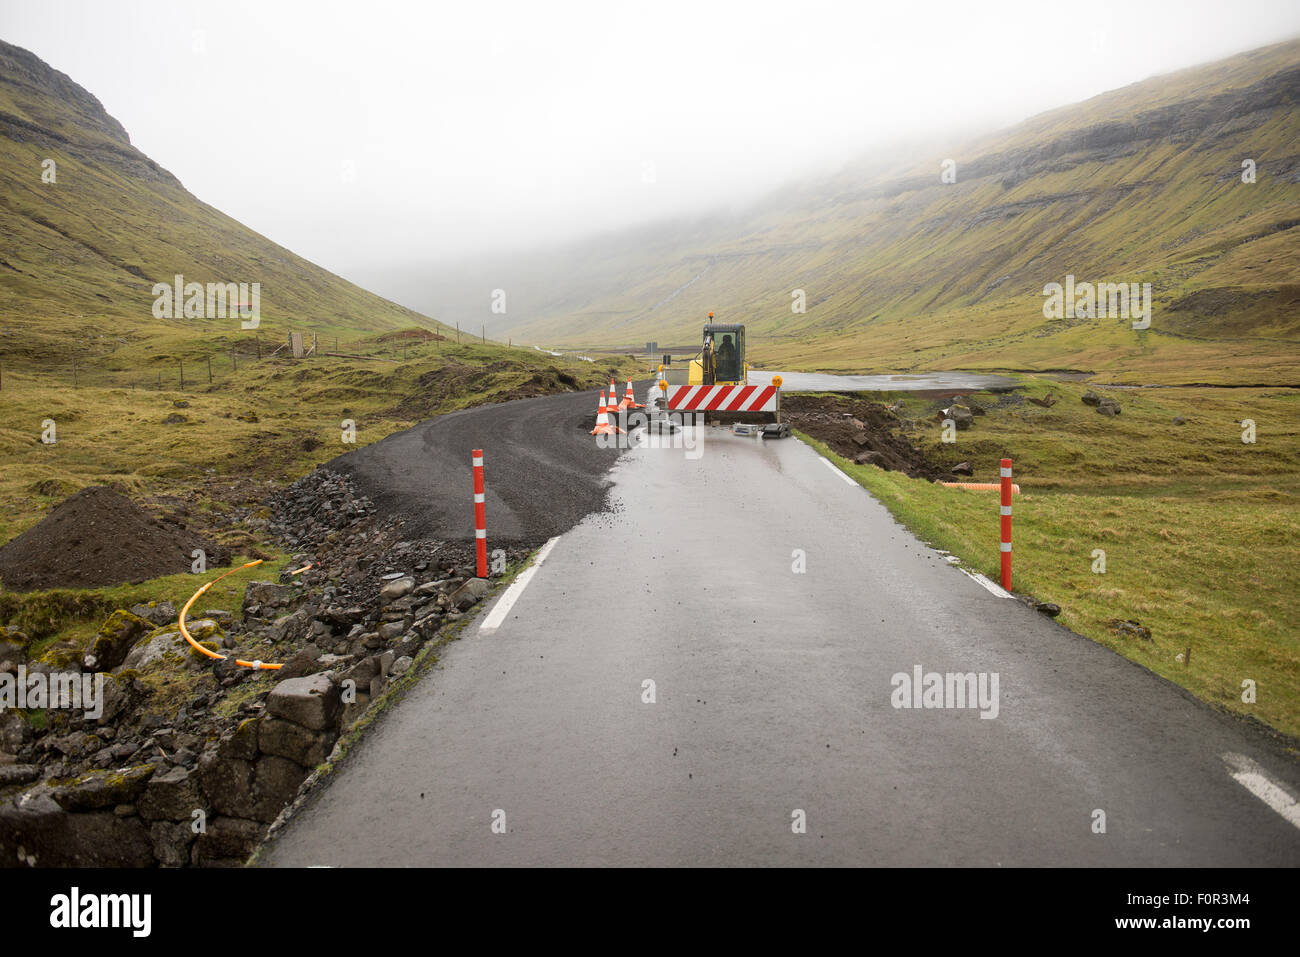 Road construction site on the Faroe Islands with road block sign and digger - Stock Image